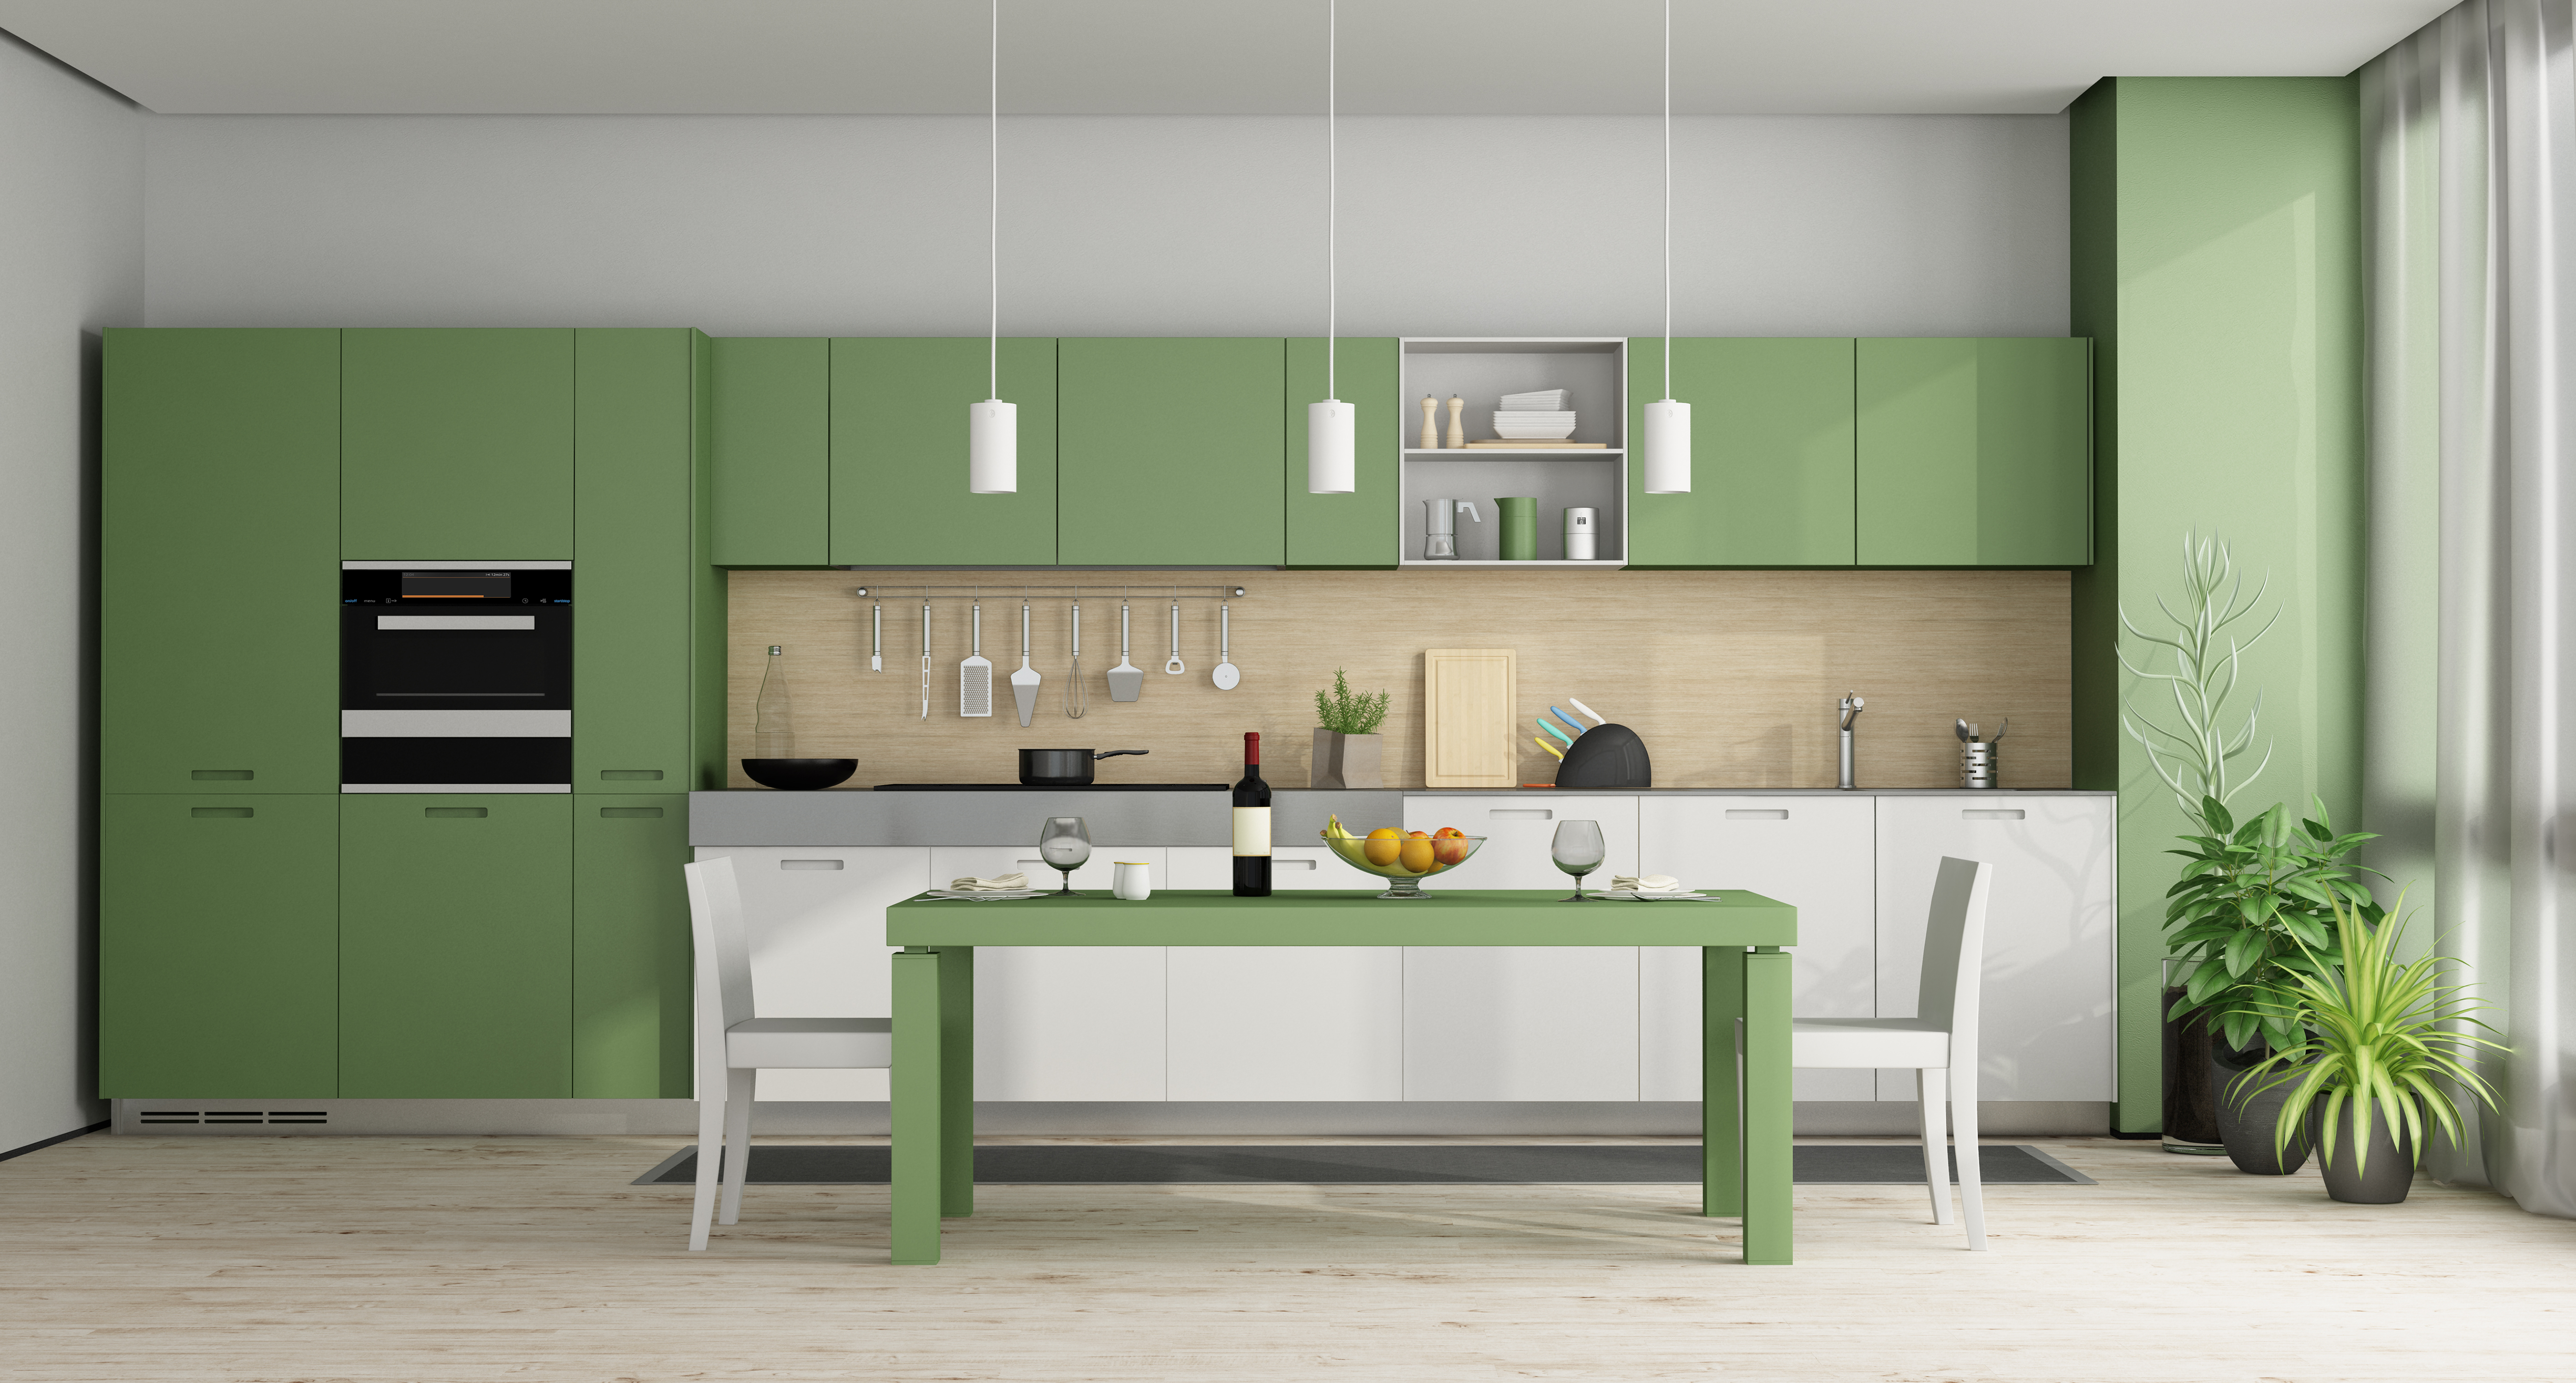 Modern kitchen with green cabinets and dining table